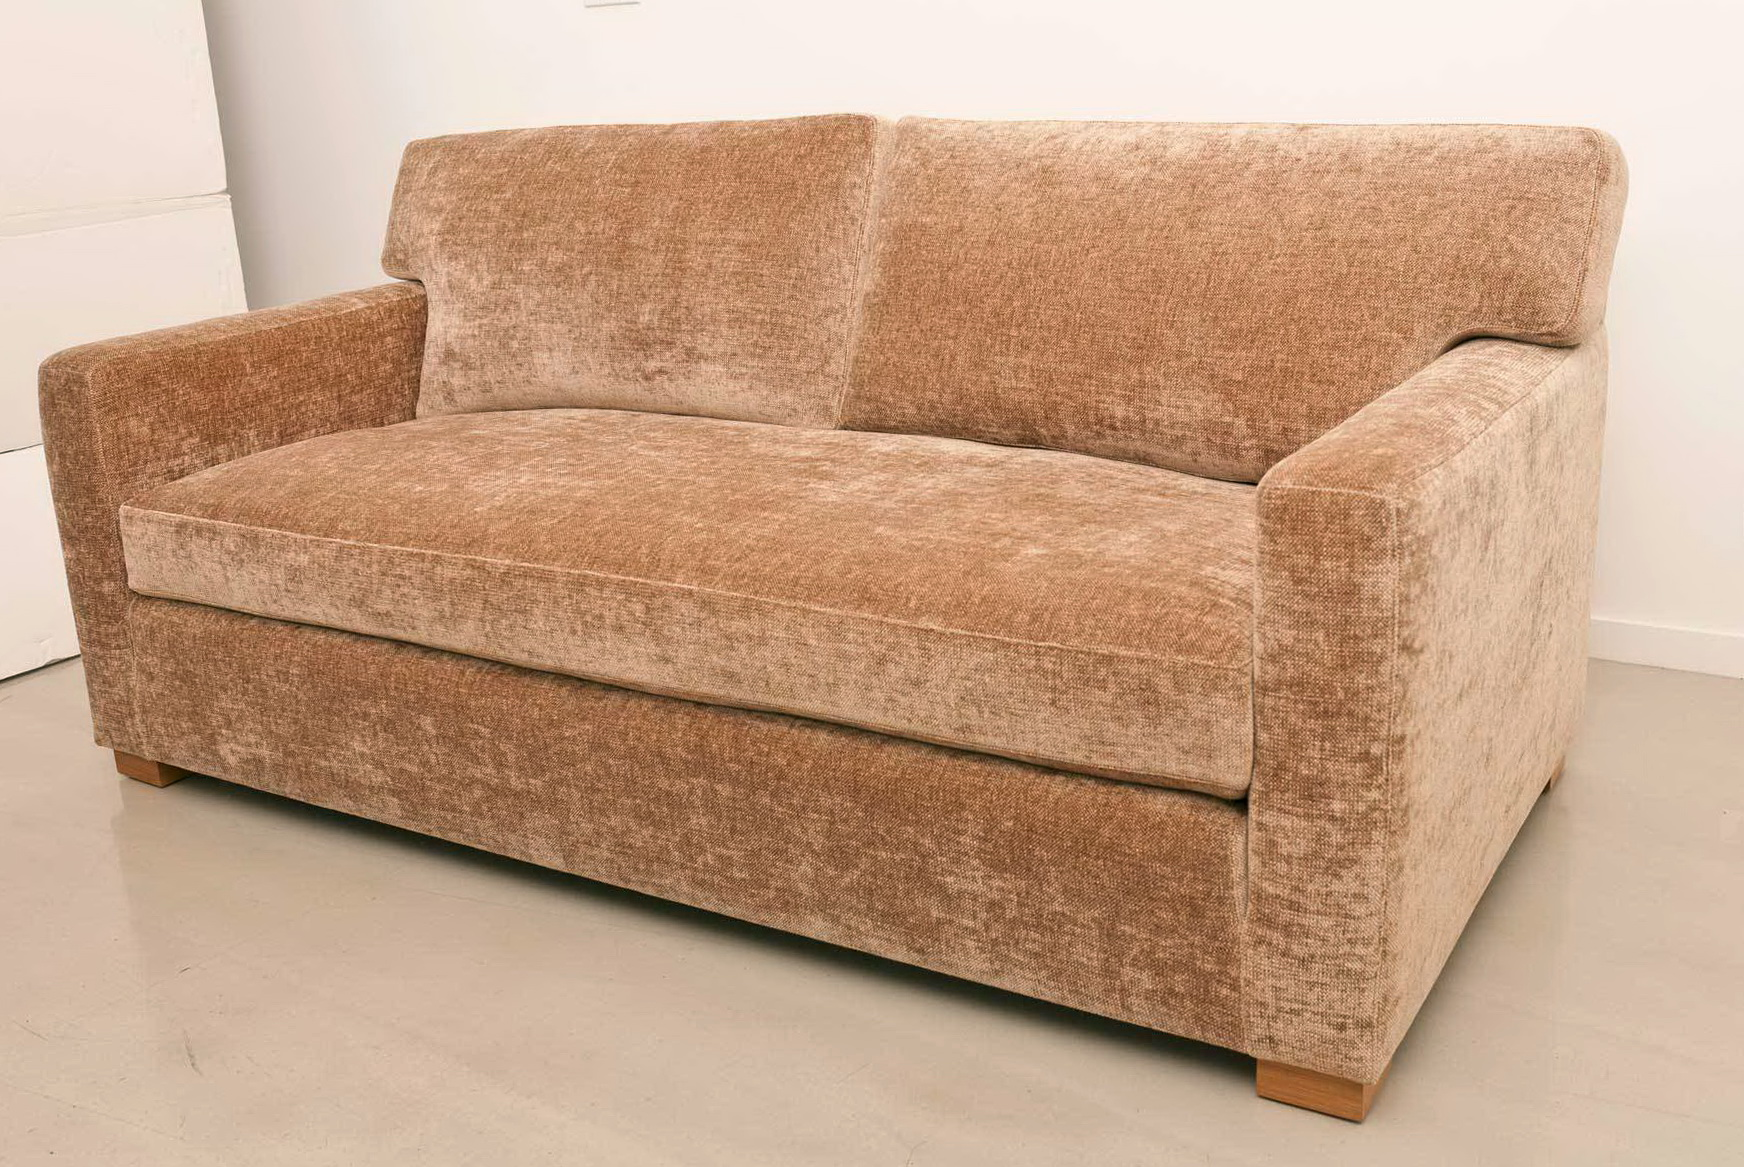 Cushions For Sale Sofa Seat Cushions For Sale Home Design Ideas